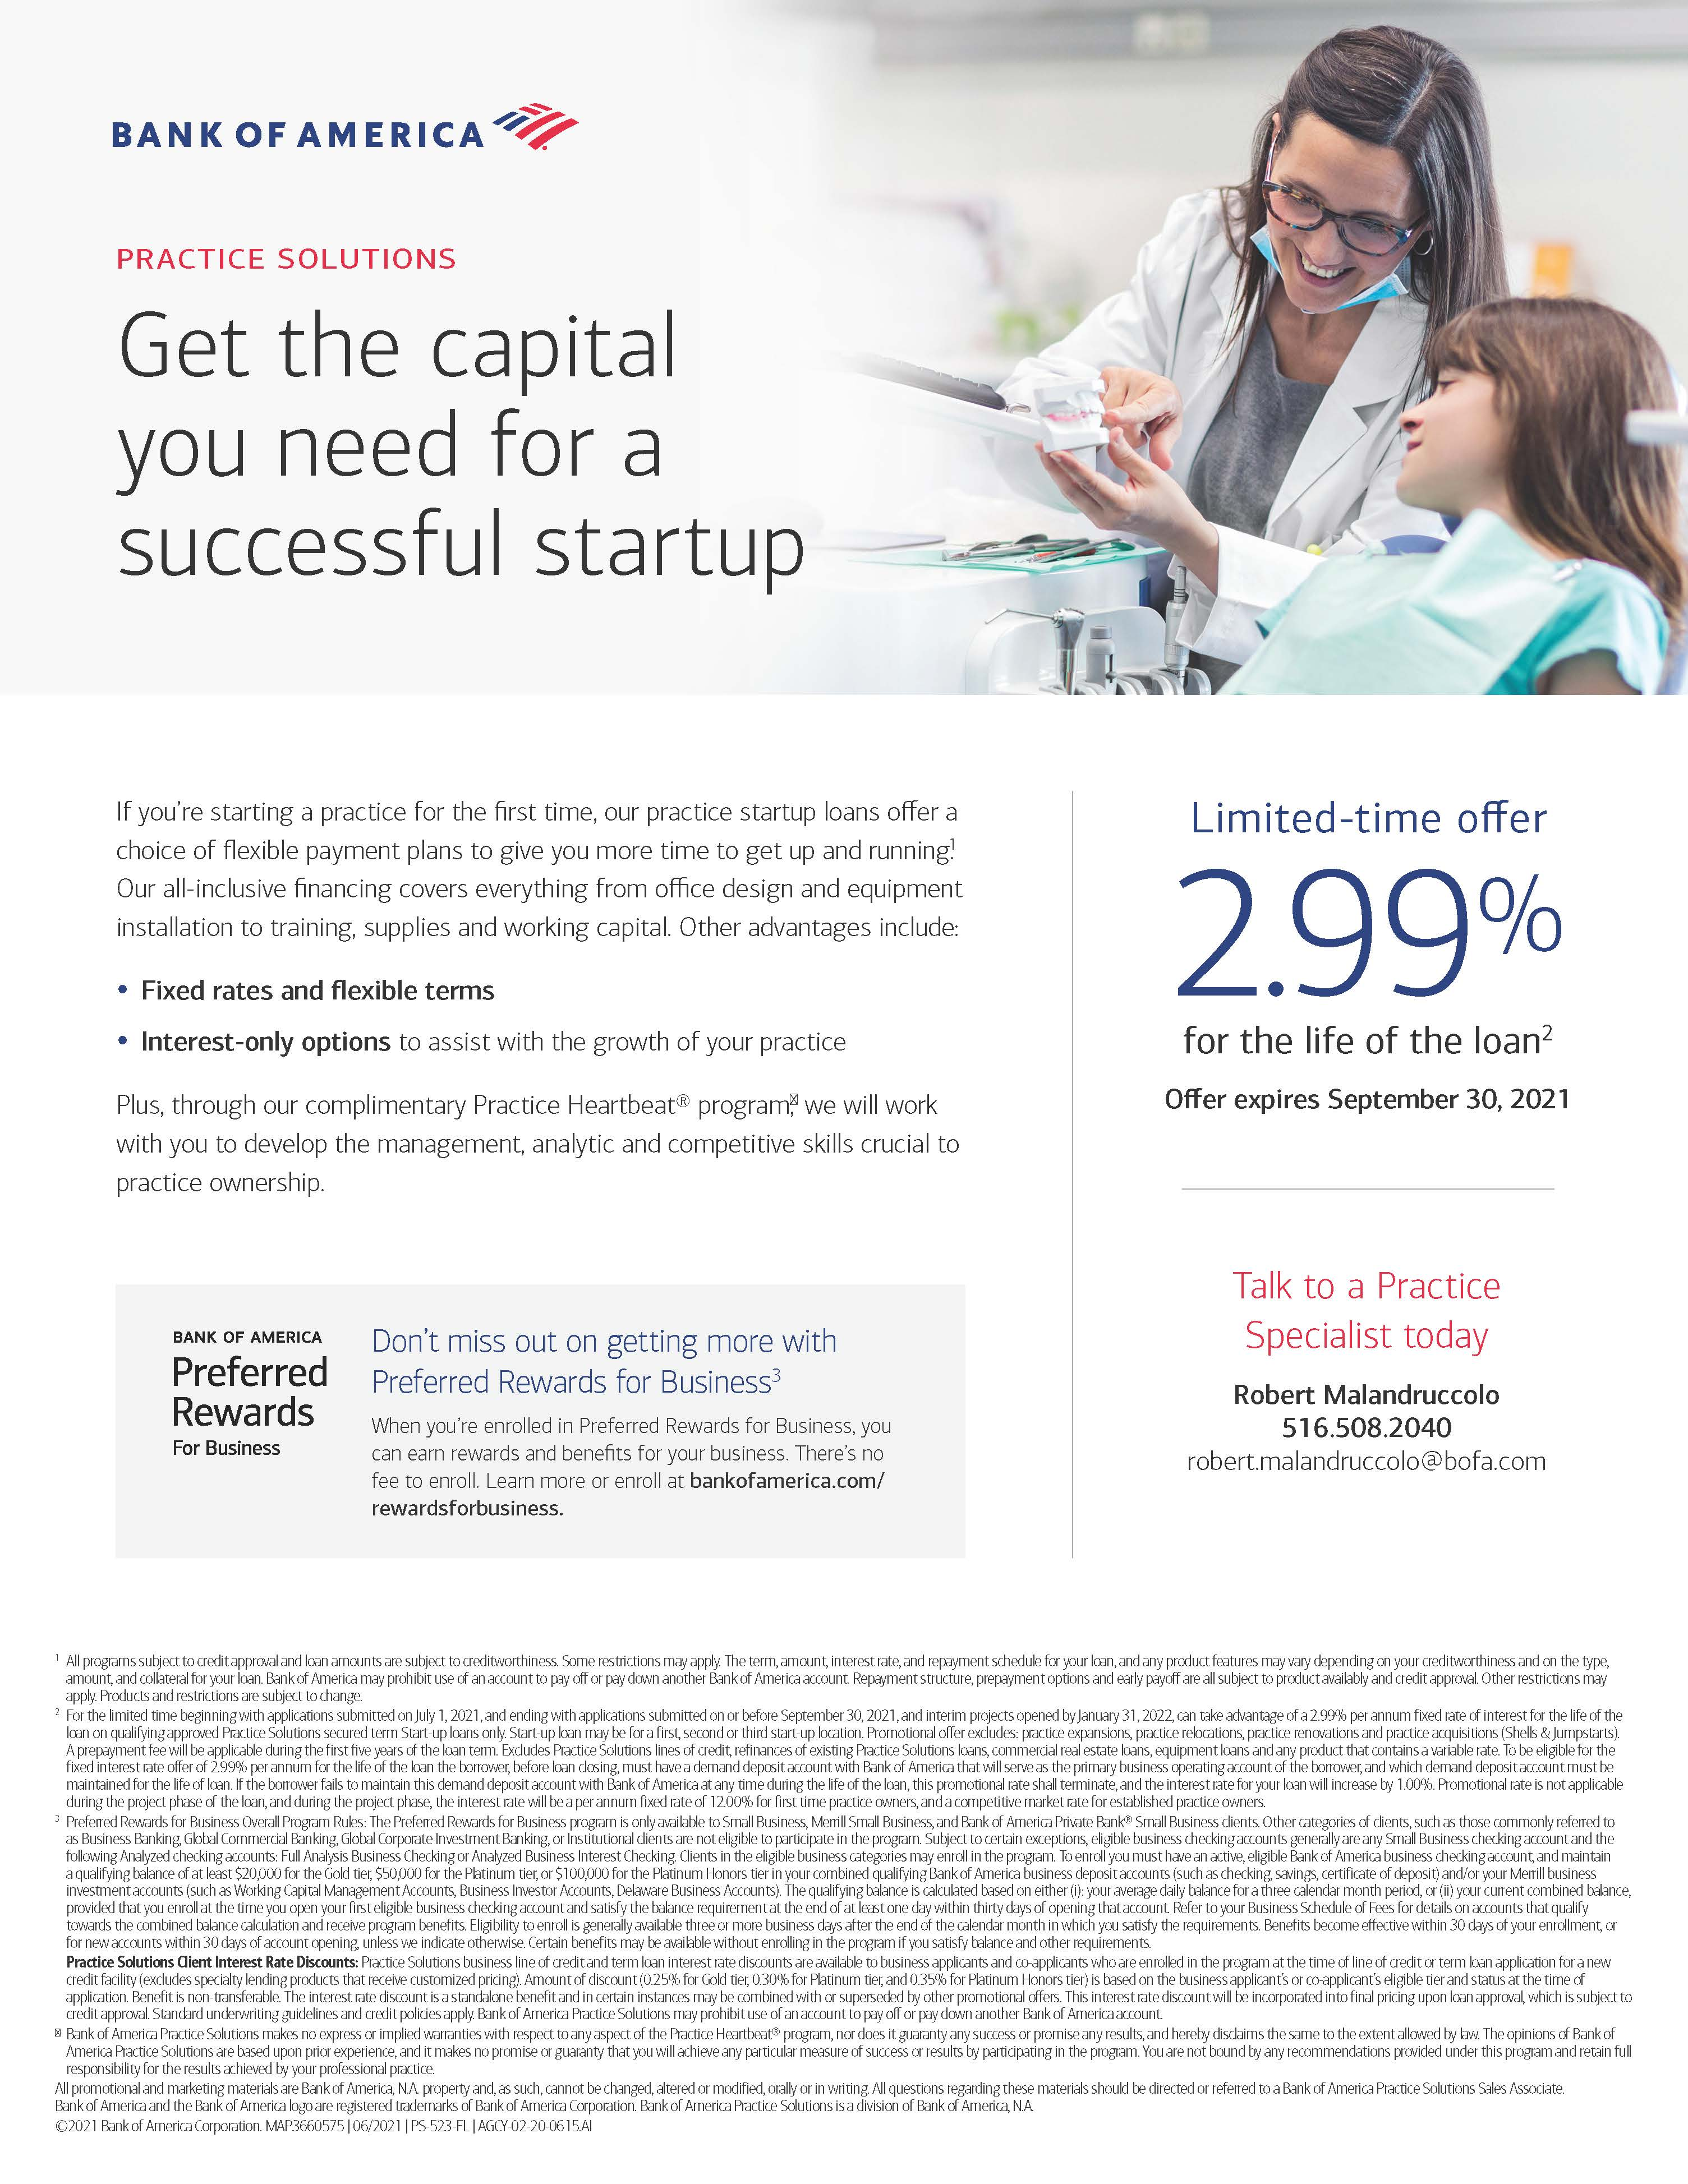 Dental Promo- Deadline to Apply Sept 30  Fixed Rate at 2.99% (1) ad